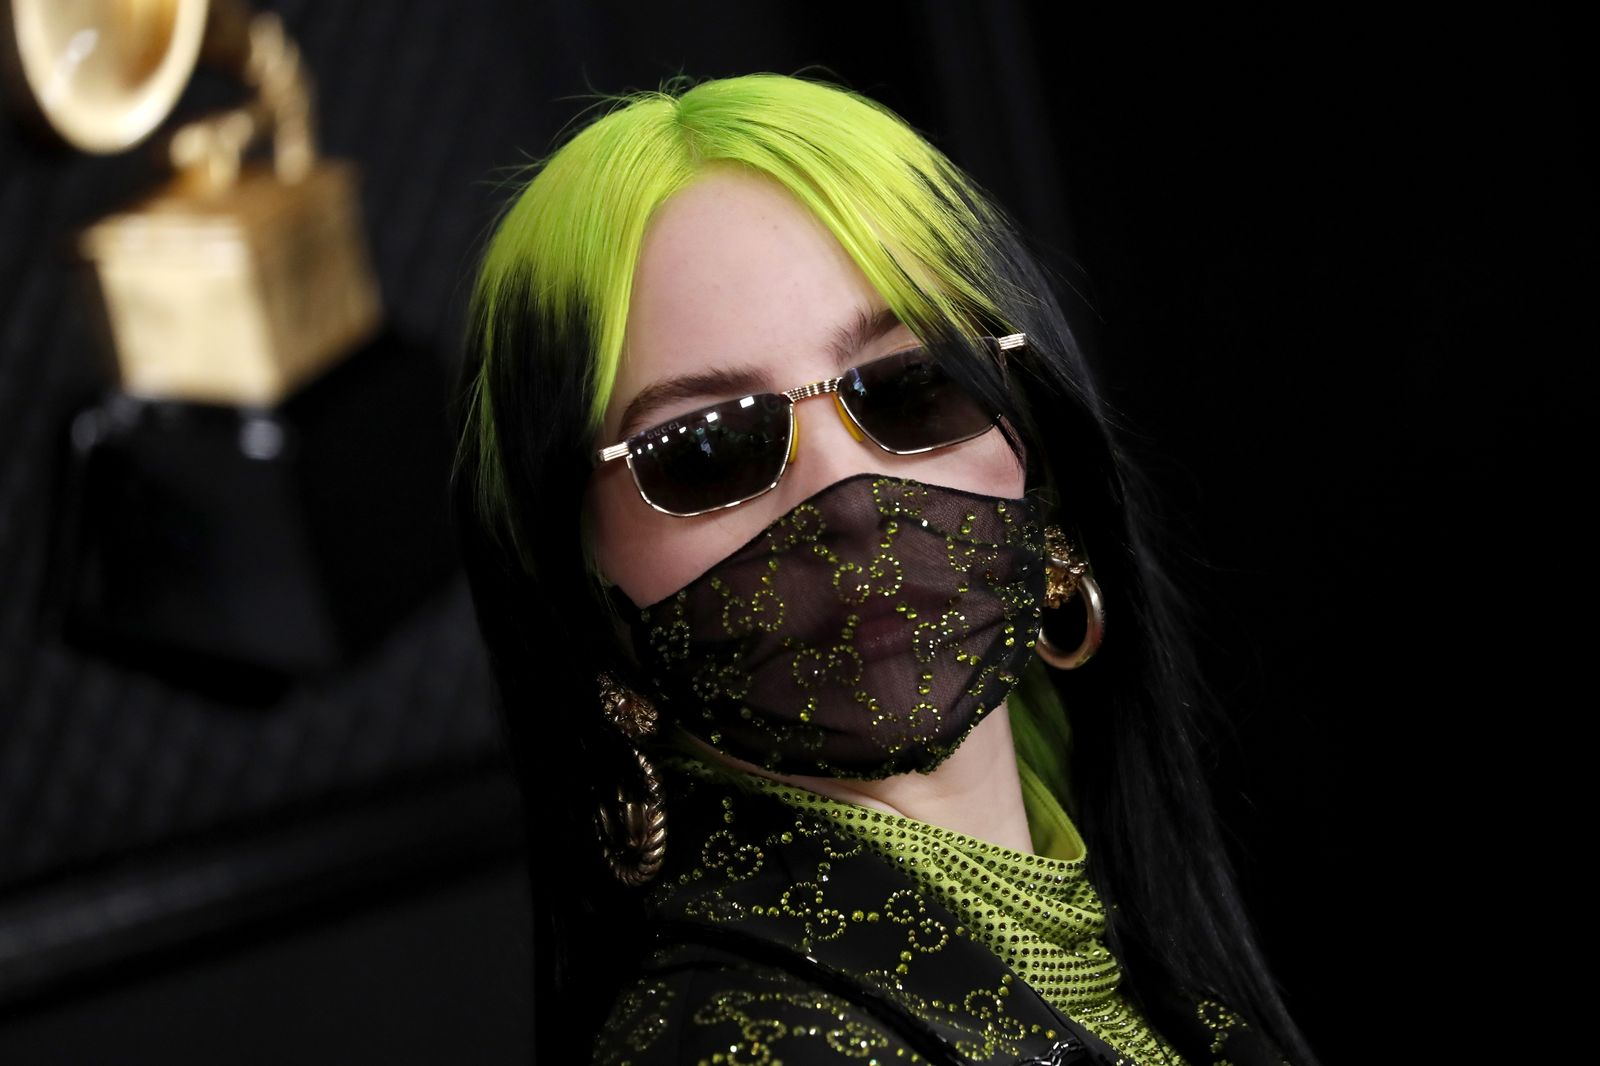 Arrivals - 62nd Annual Grammy Awards, Los Angeles, USA - 26 Jan 2020